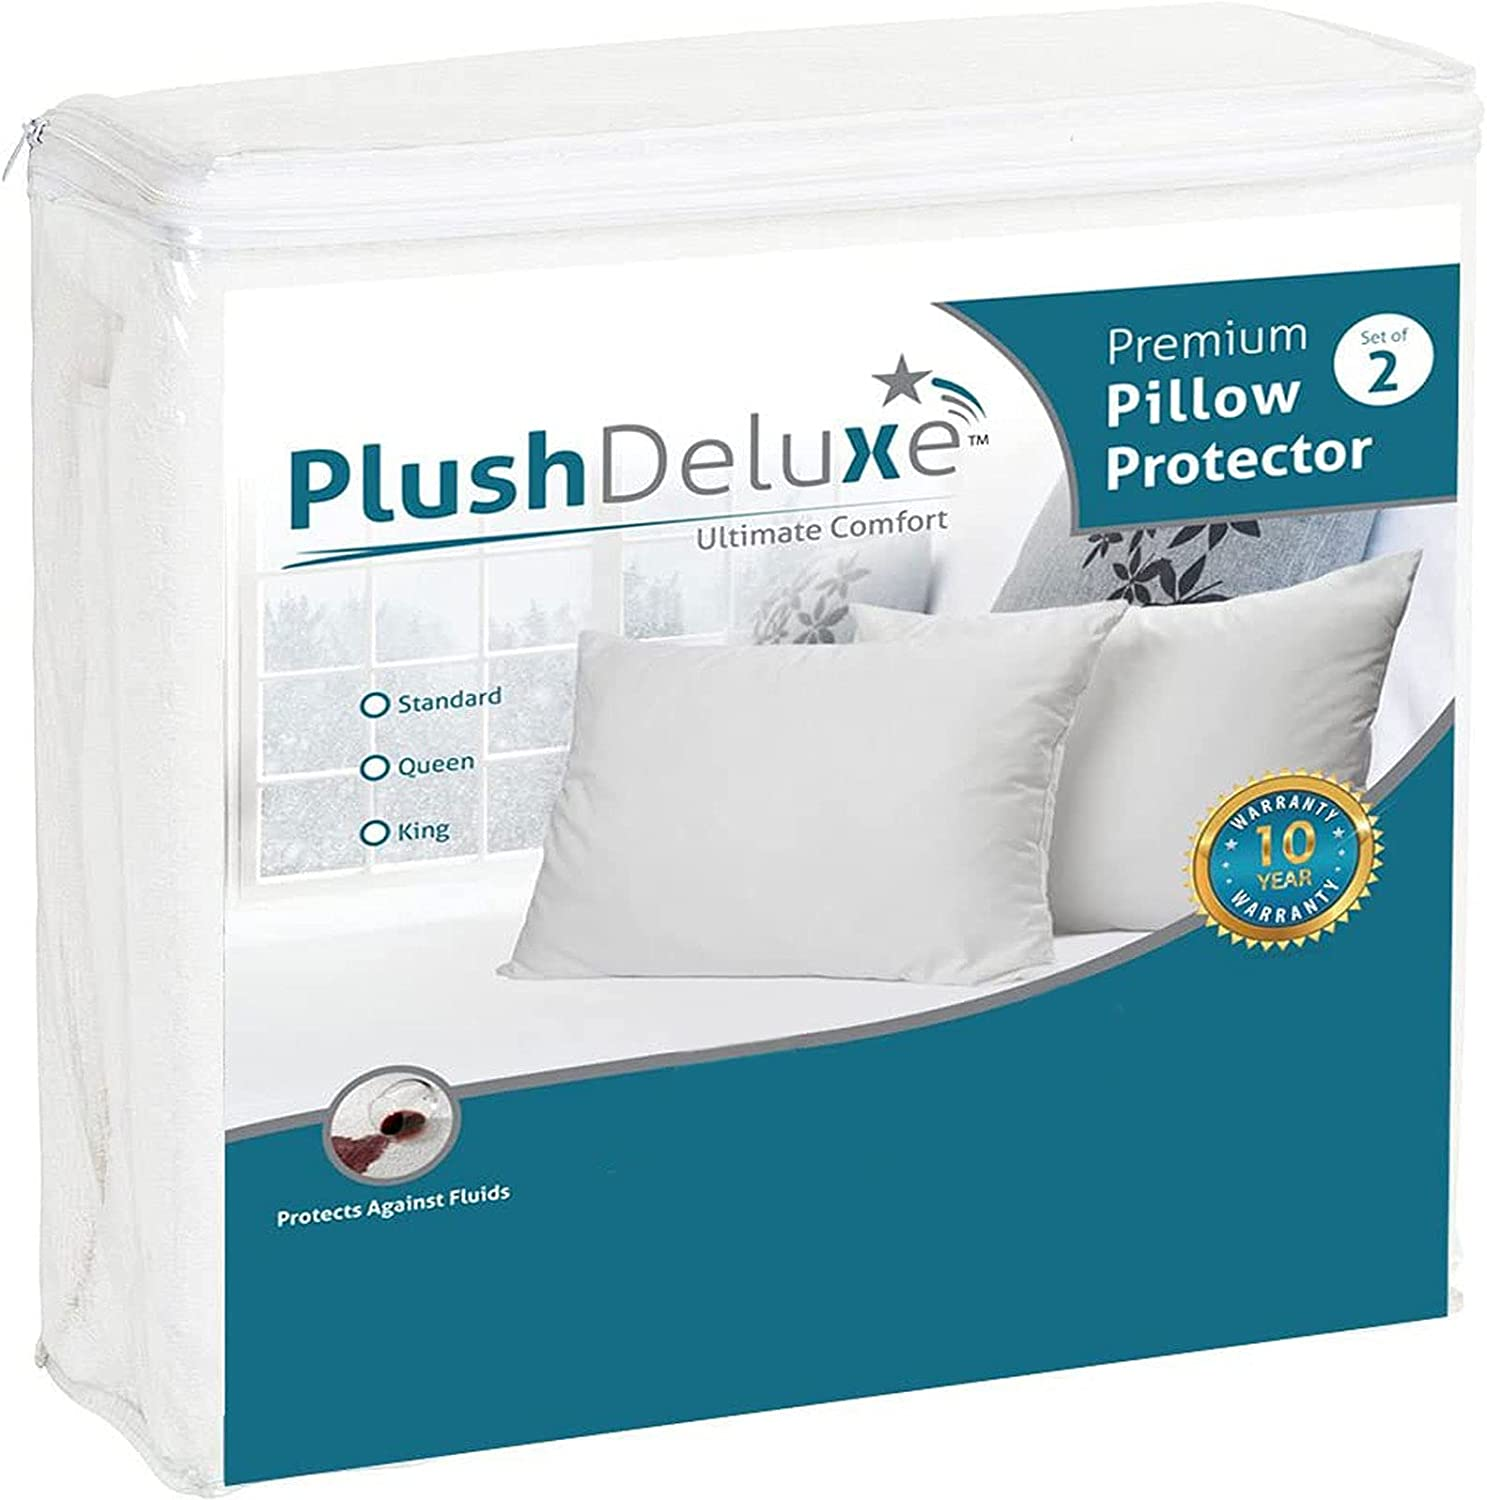 PlushDeluxe Premium Pillow New arrival Protector Mail order 100% S Proof and Waterproof